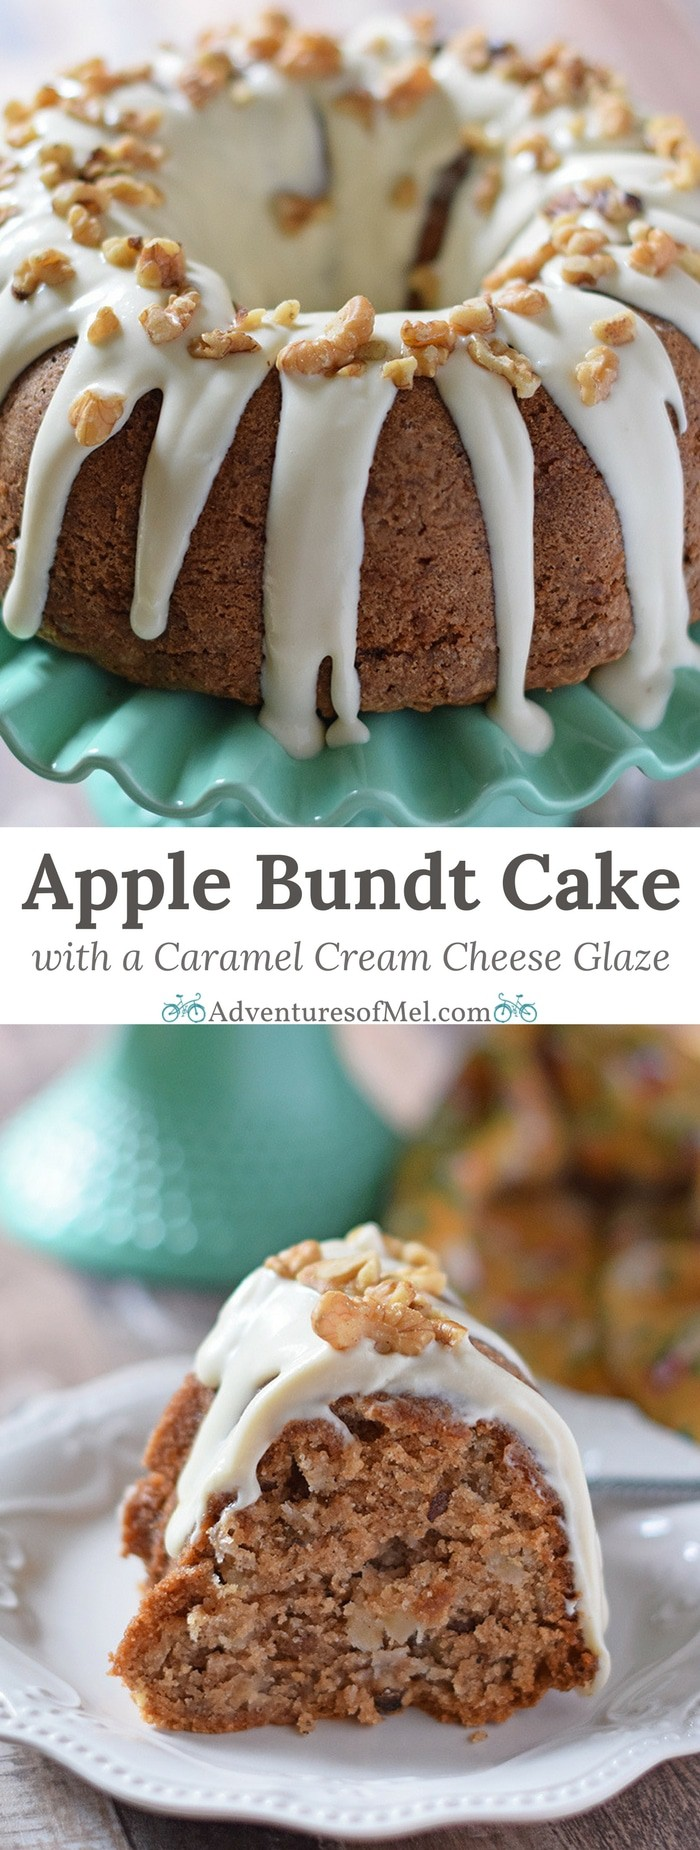 Apple Bundt Cake, a recipe made with apples, cinnamon, walnuts, and a caramel cream cheese glaze. Makes a scrumptious fall and holiday dessert!